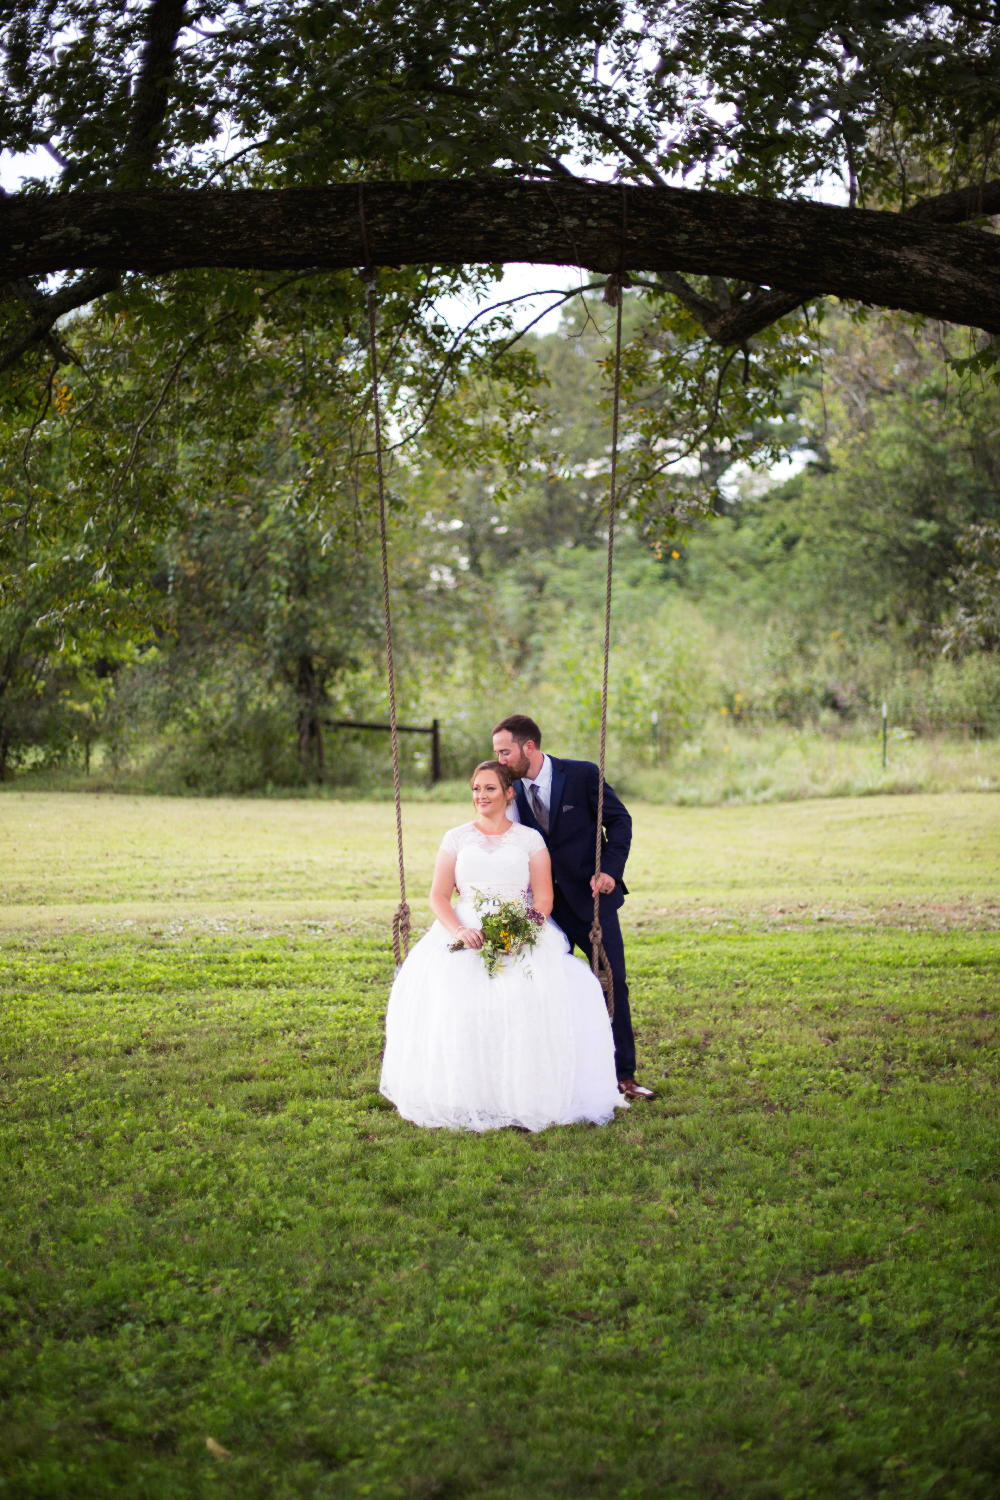 bride and groom on swing.jpg